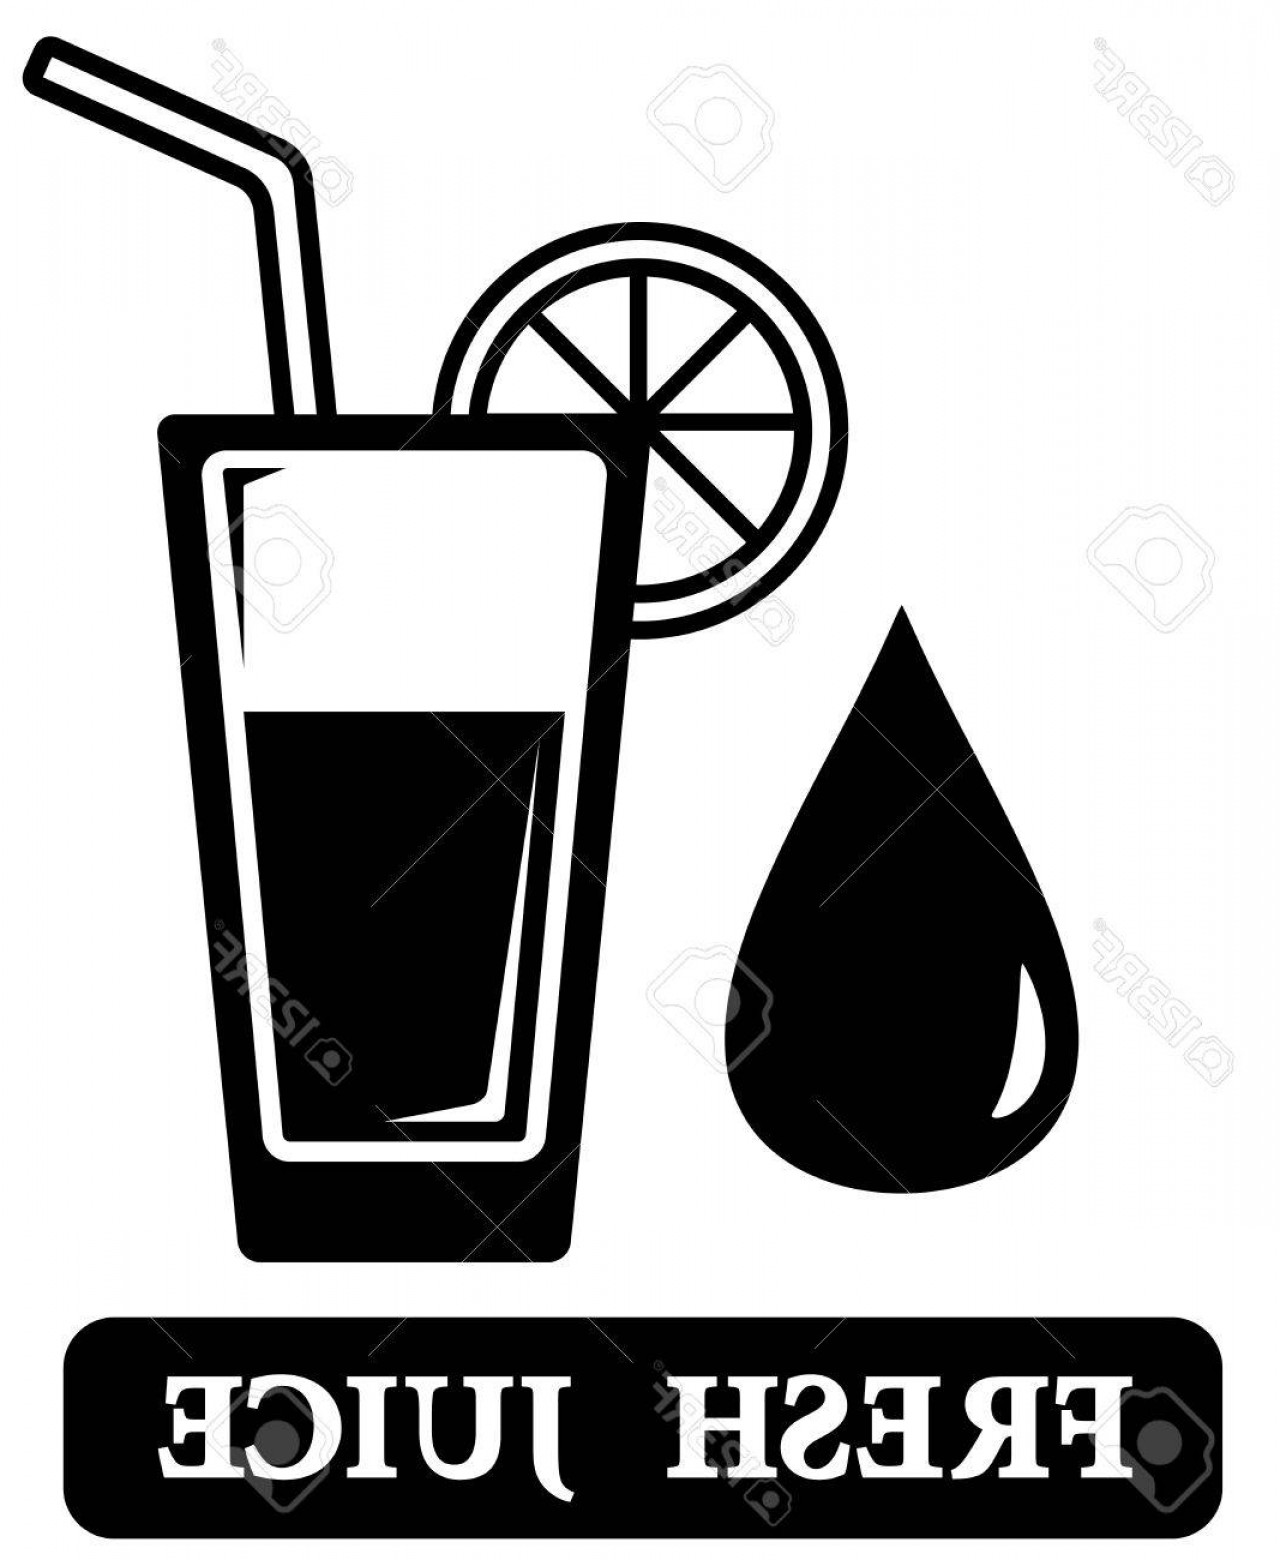 Juice Vector Black: Photostock Vector Black Isolated Fresh Juice Icon With Glass Silhouette